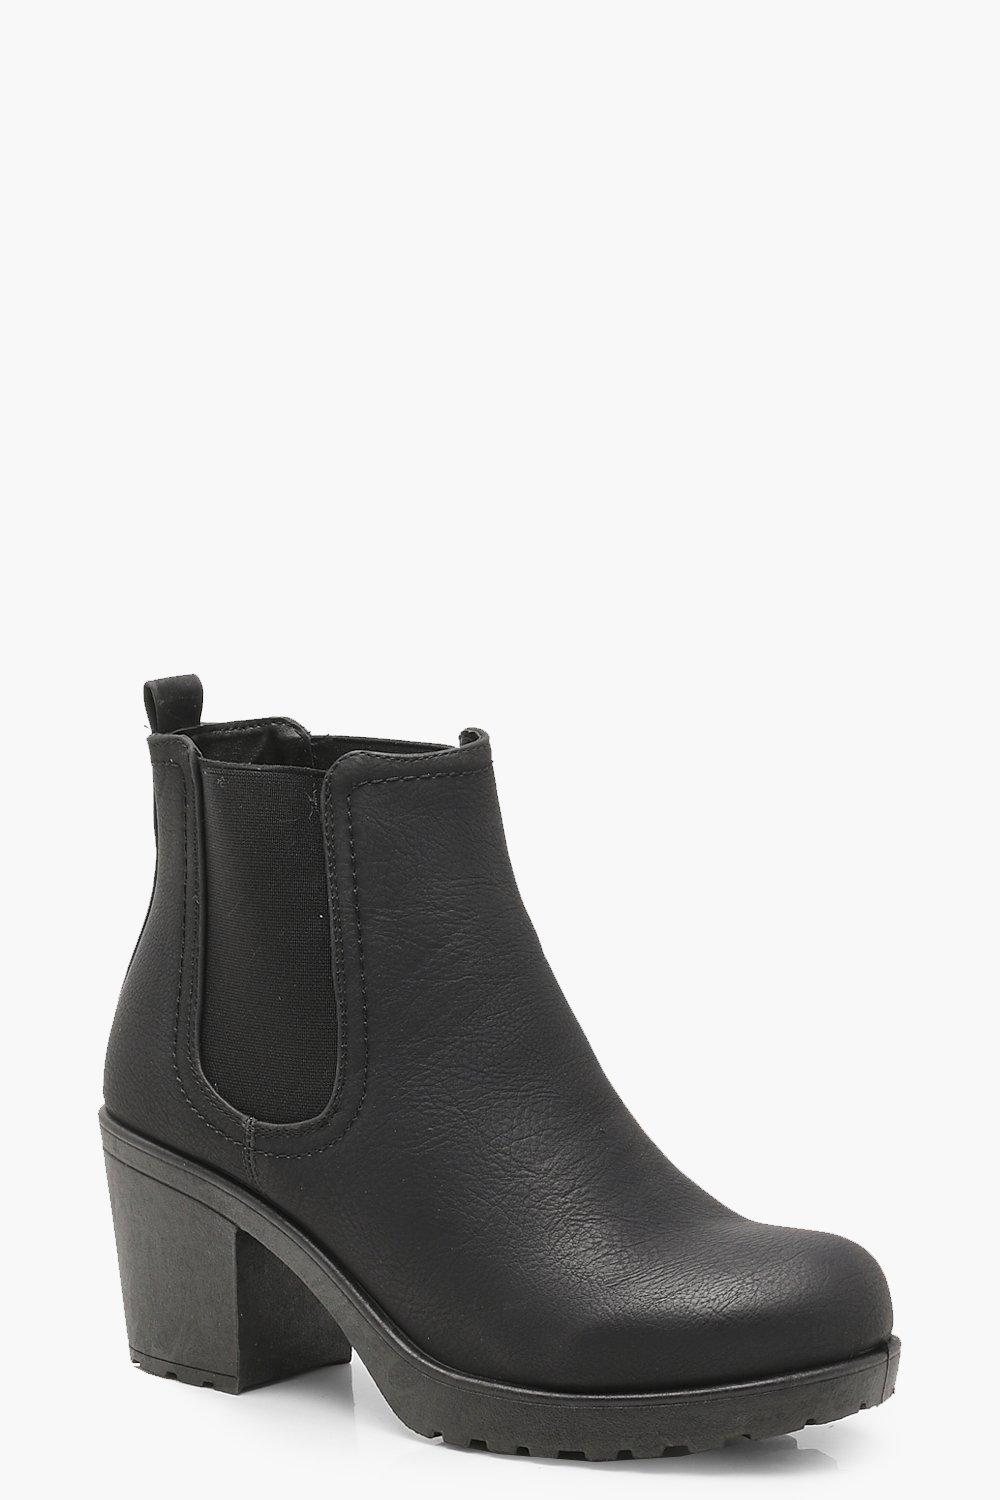 Womens Wide Fit Chunky Cleated Heel Chelsea Boots - Black - 3